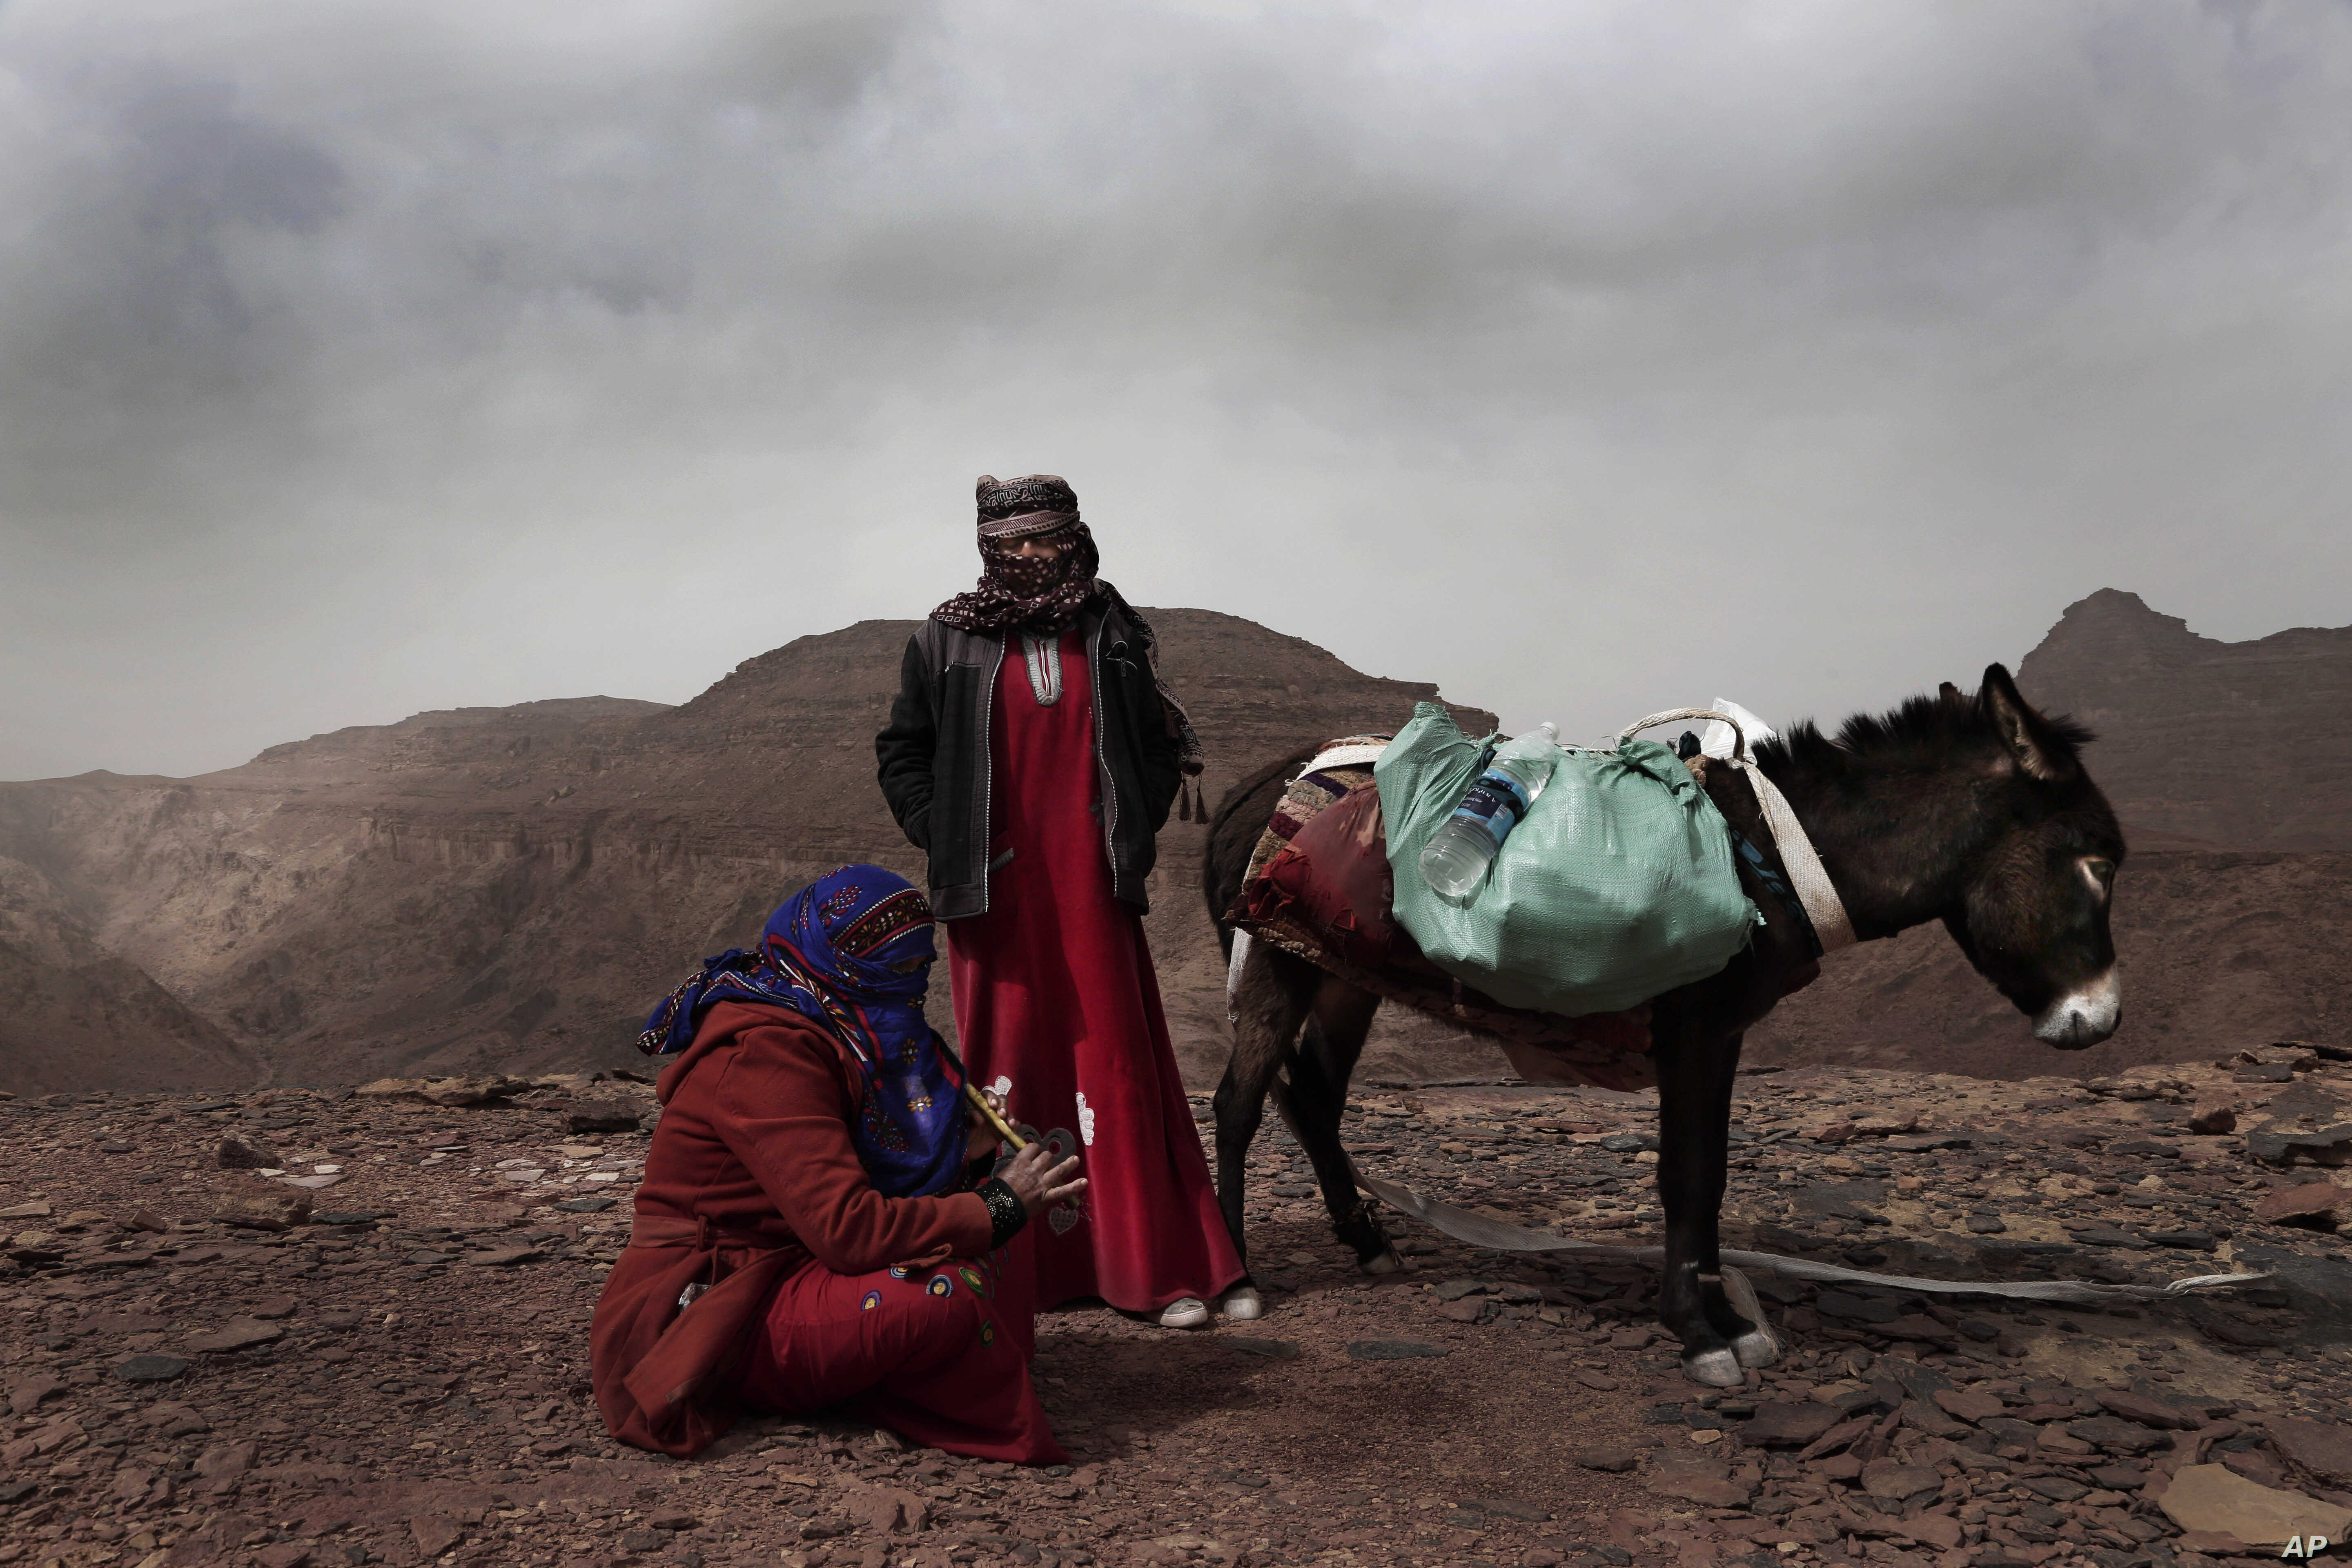 Umm Yasser, the first Bedouin female guide from the Hamada tribe, looks at Umm Soliman as she plays the flute, near Wadi Sahw, Abu Zenima, in South Sinai, Egypt, March 30, 2019.